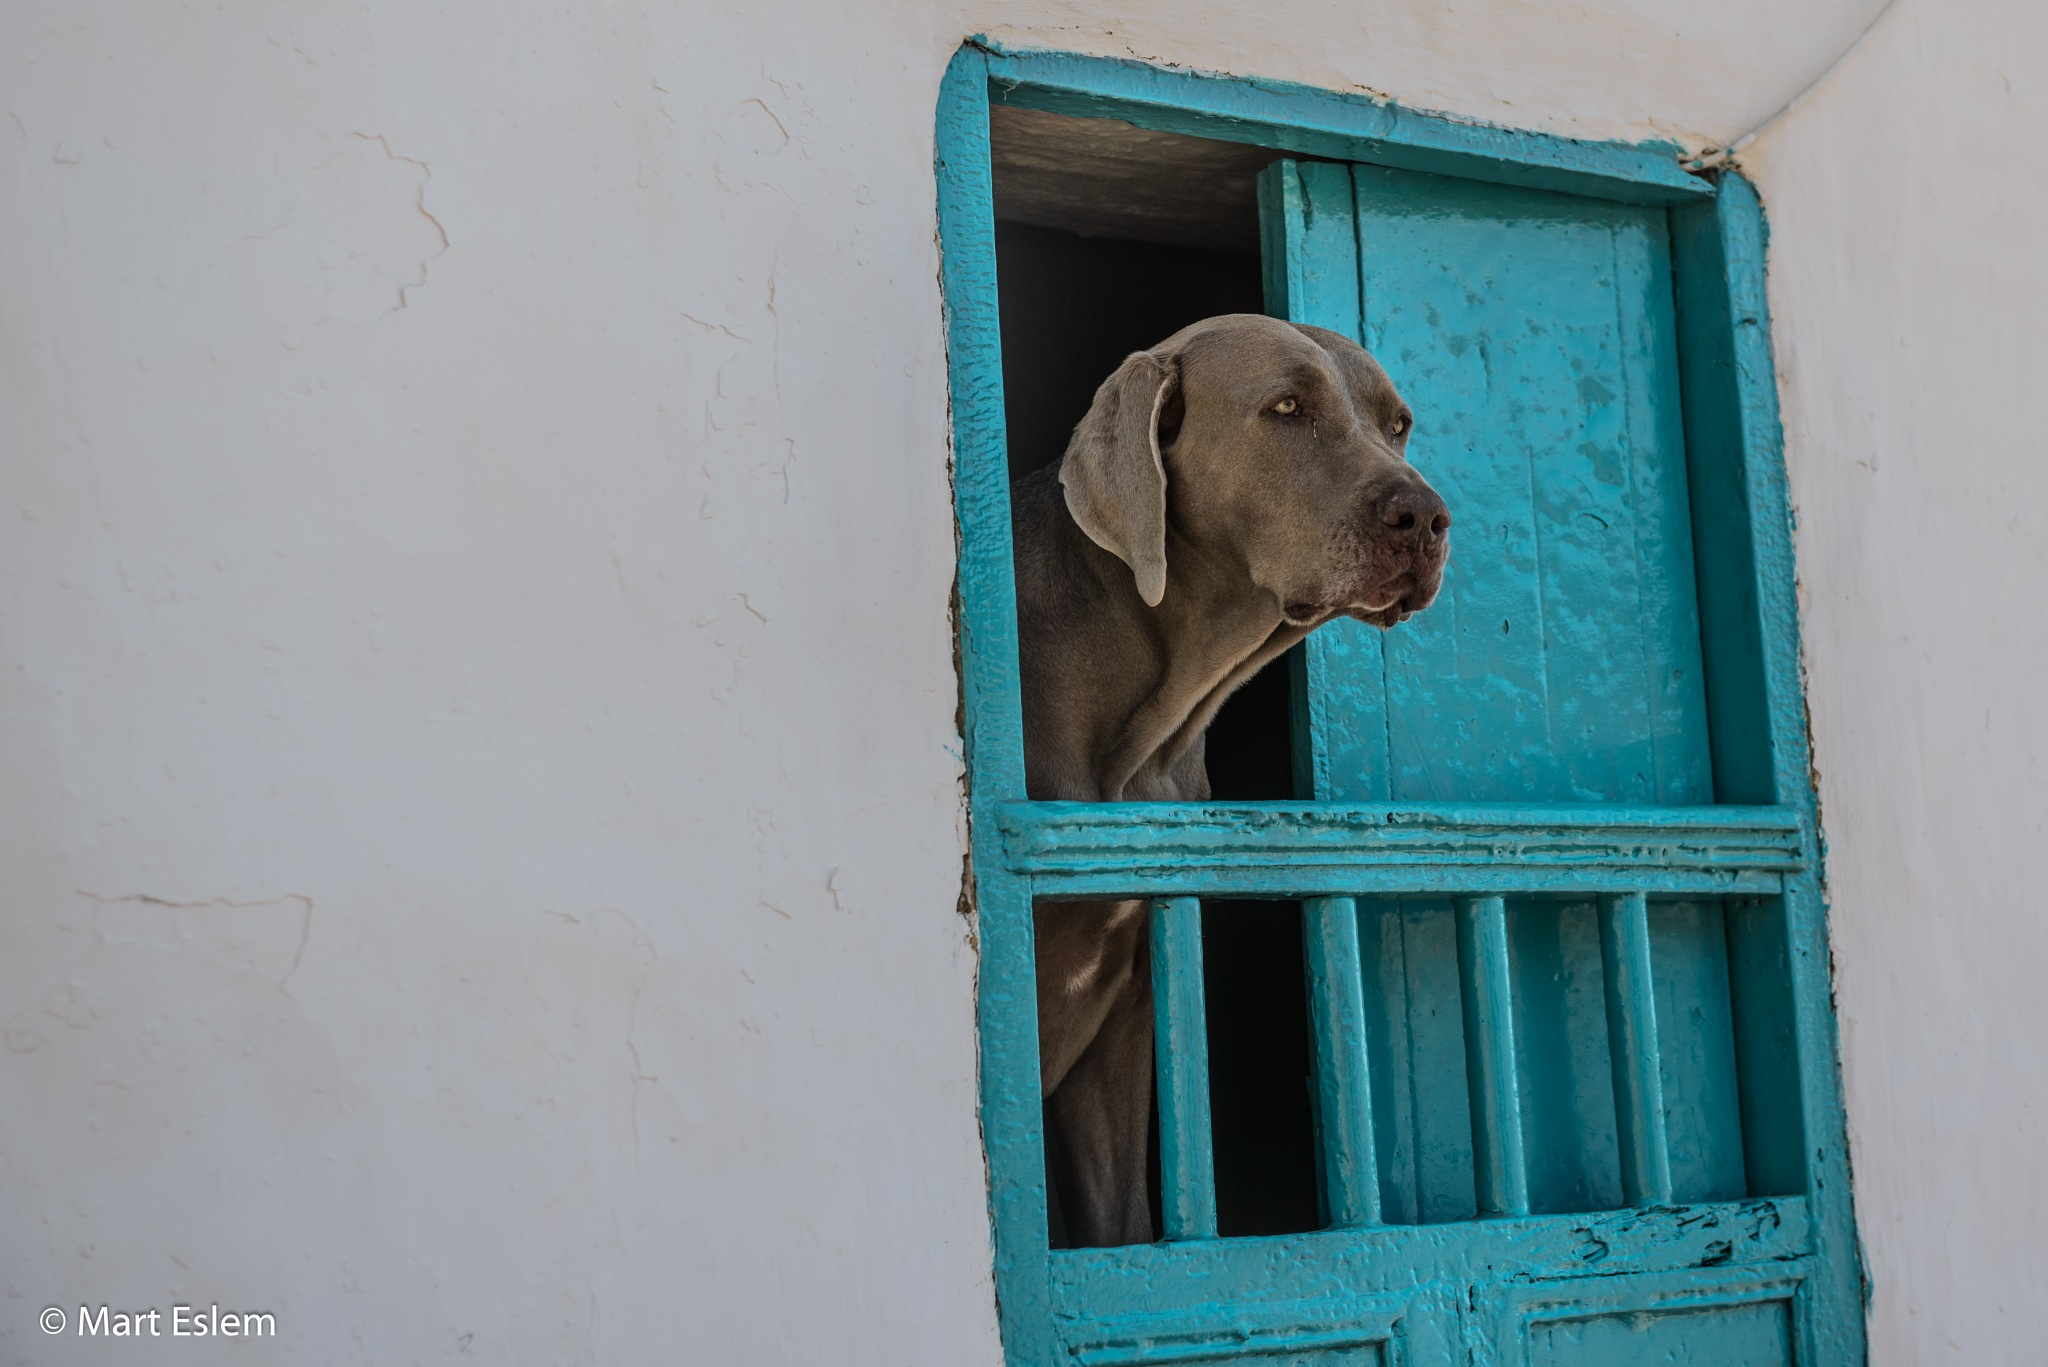 Dog in the window by Mart Eslem